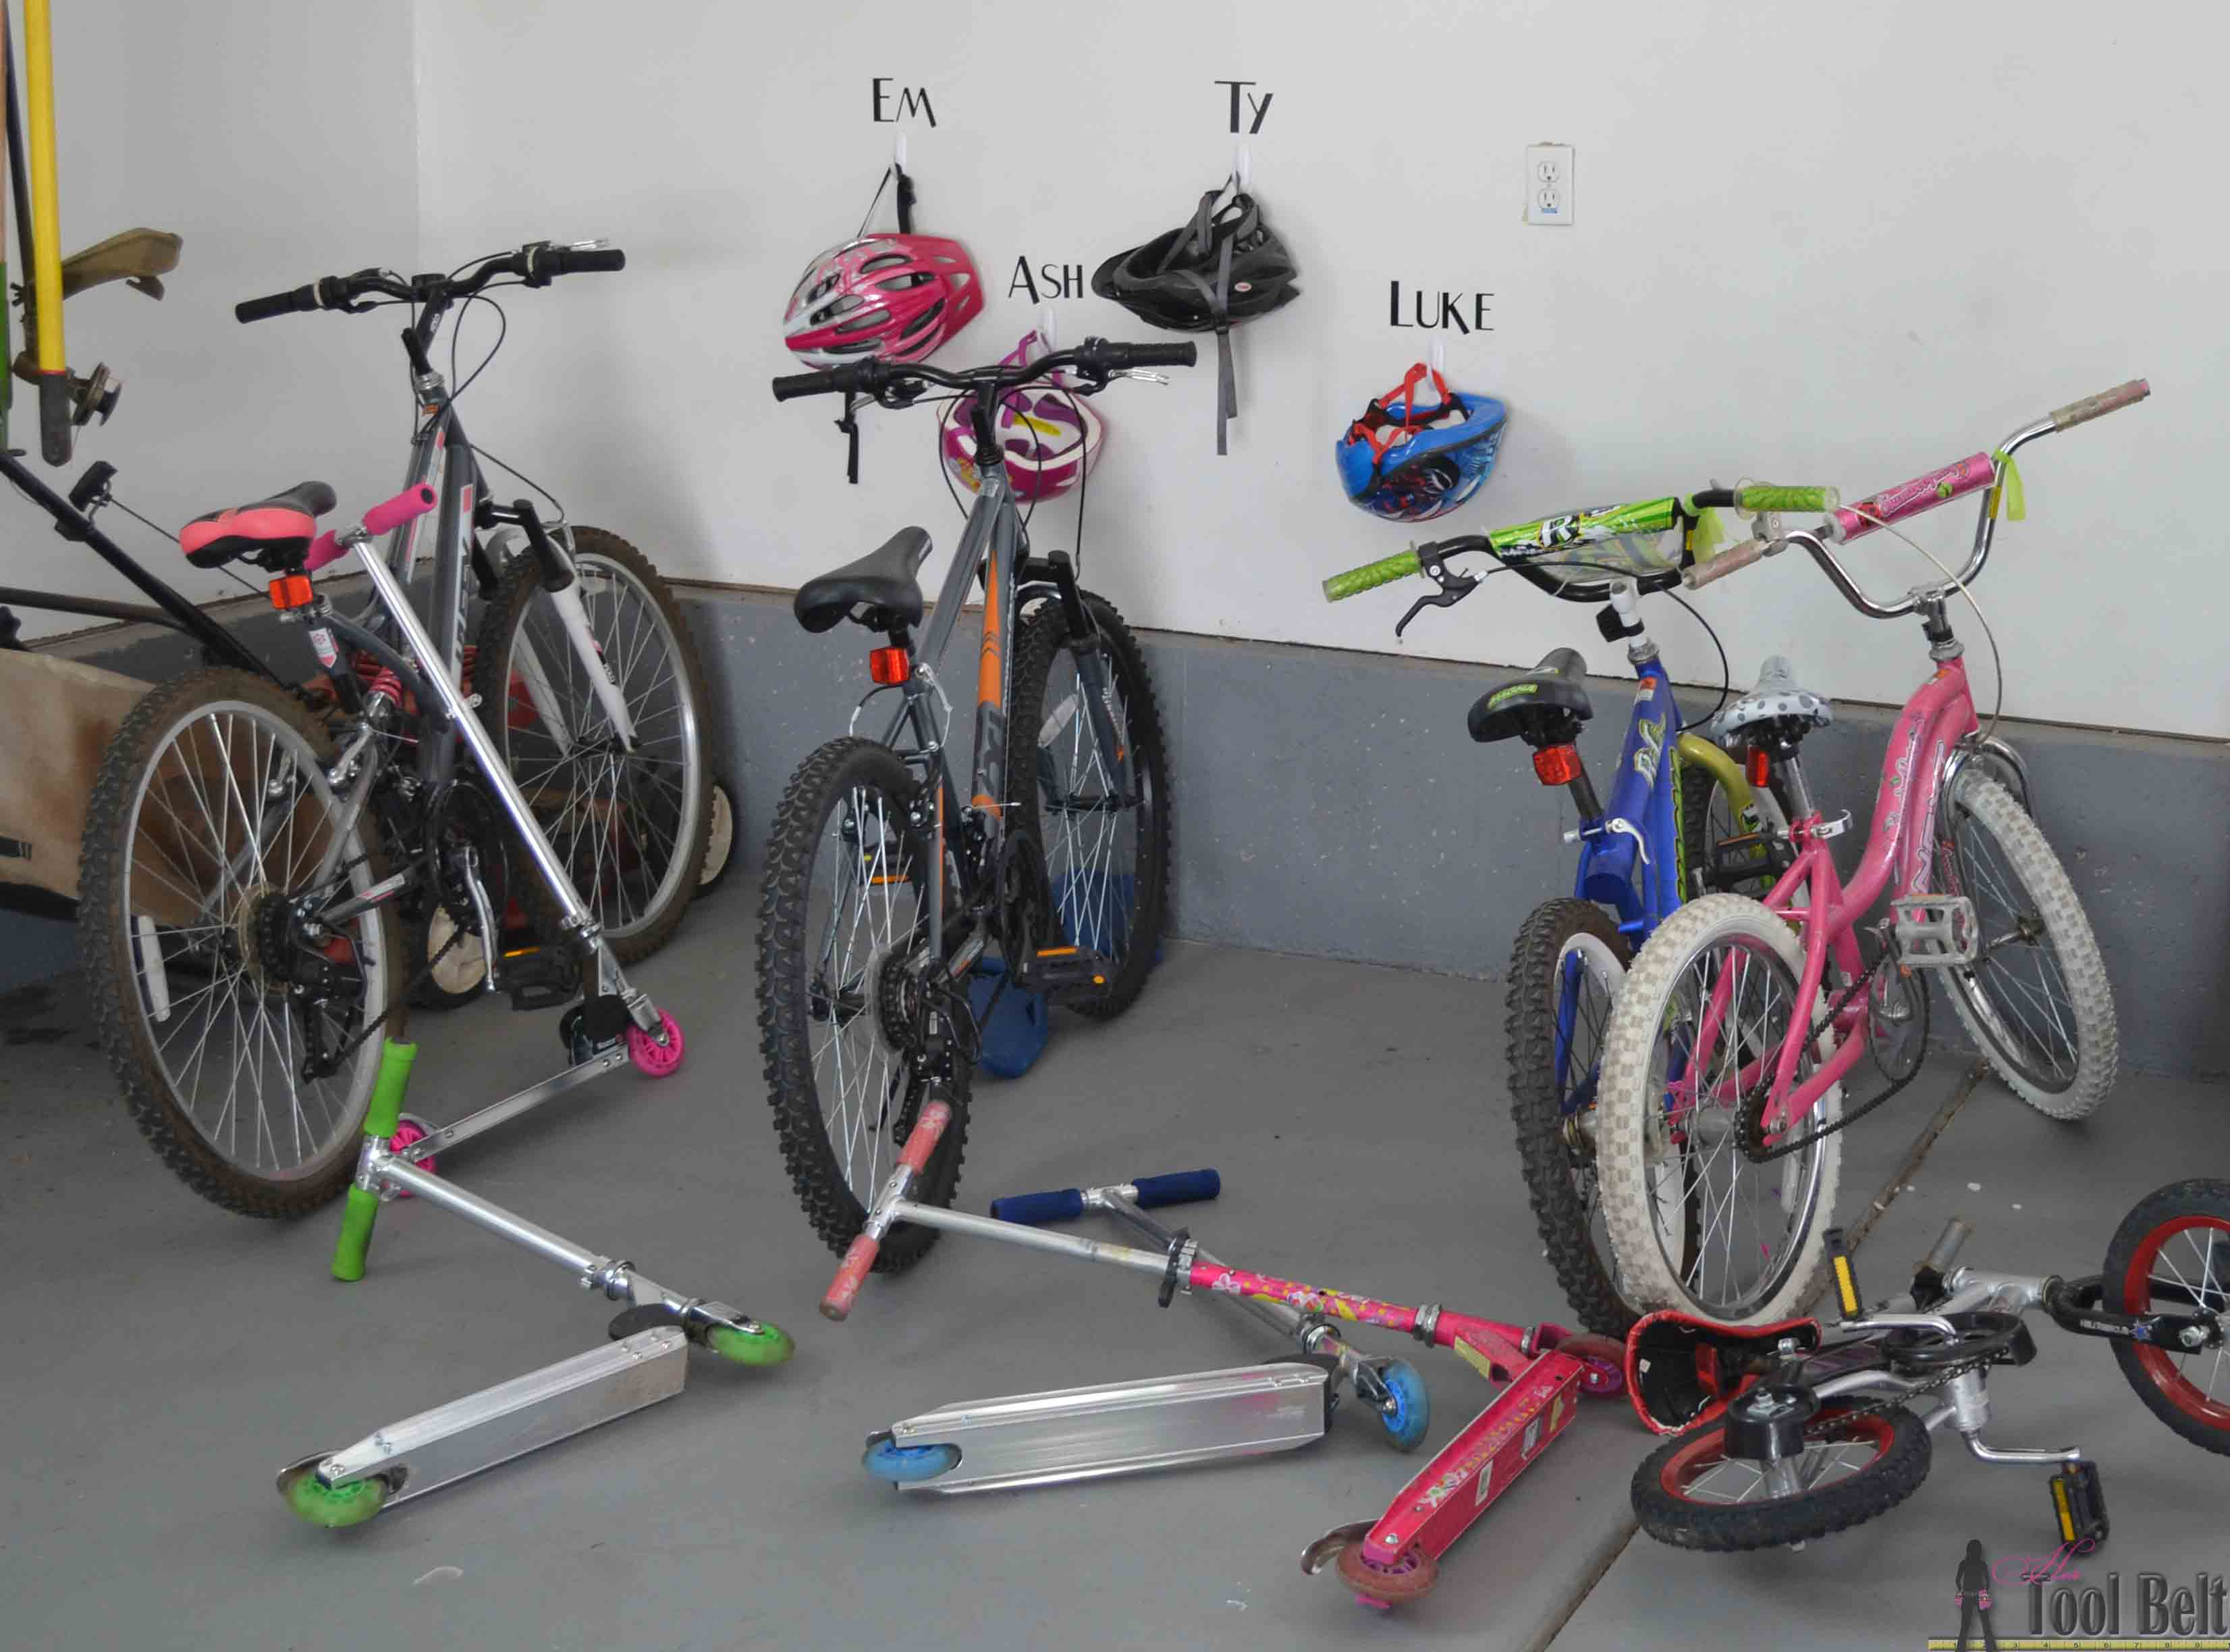 Diy bike and scooter rack her tool belt the perfect way to organize those bikes and scooters all over the garage free and solutioingenieria Images